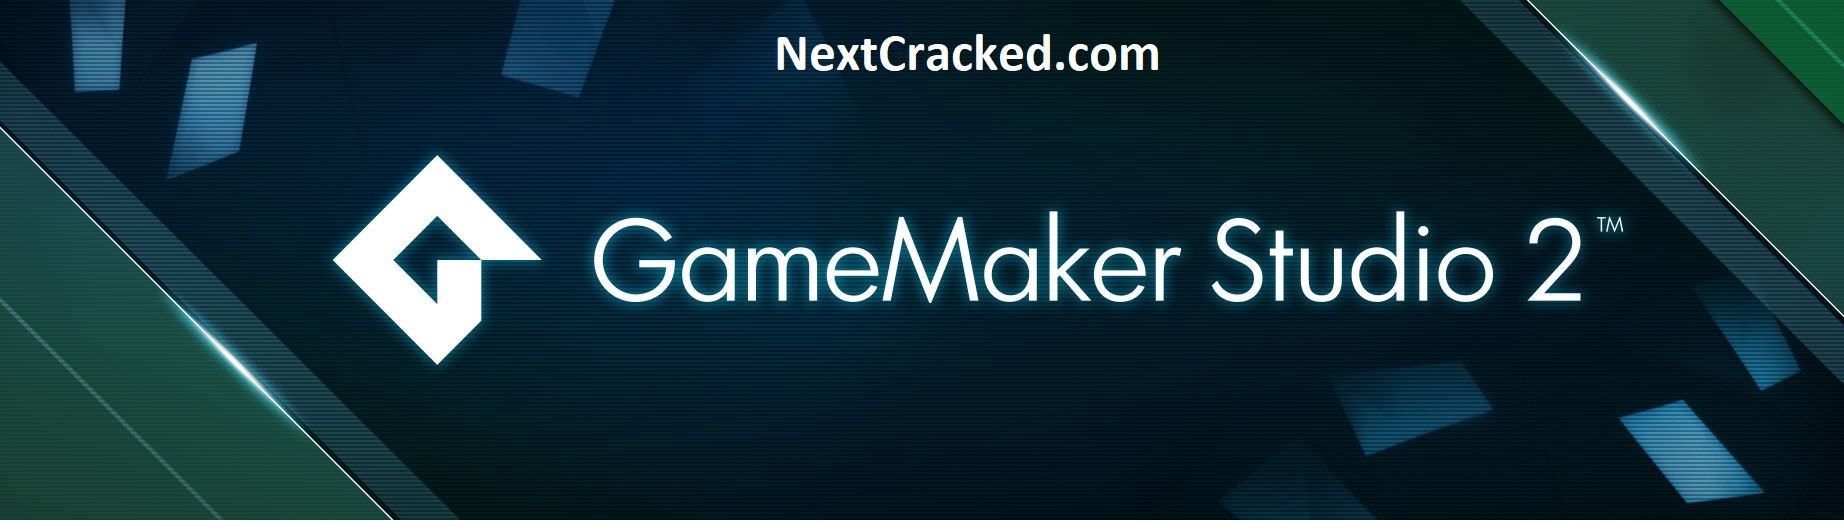 Game Maker Studio Ultimate Crack | Used to Create Games |[Latest 2021]